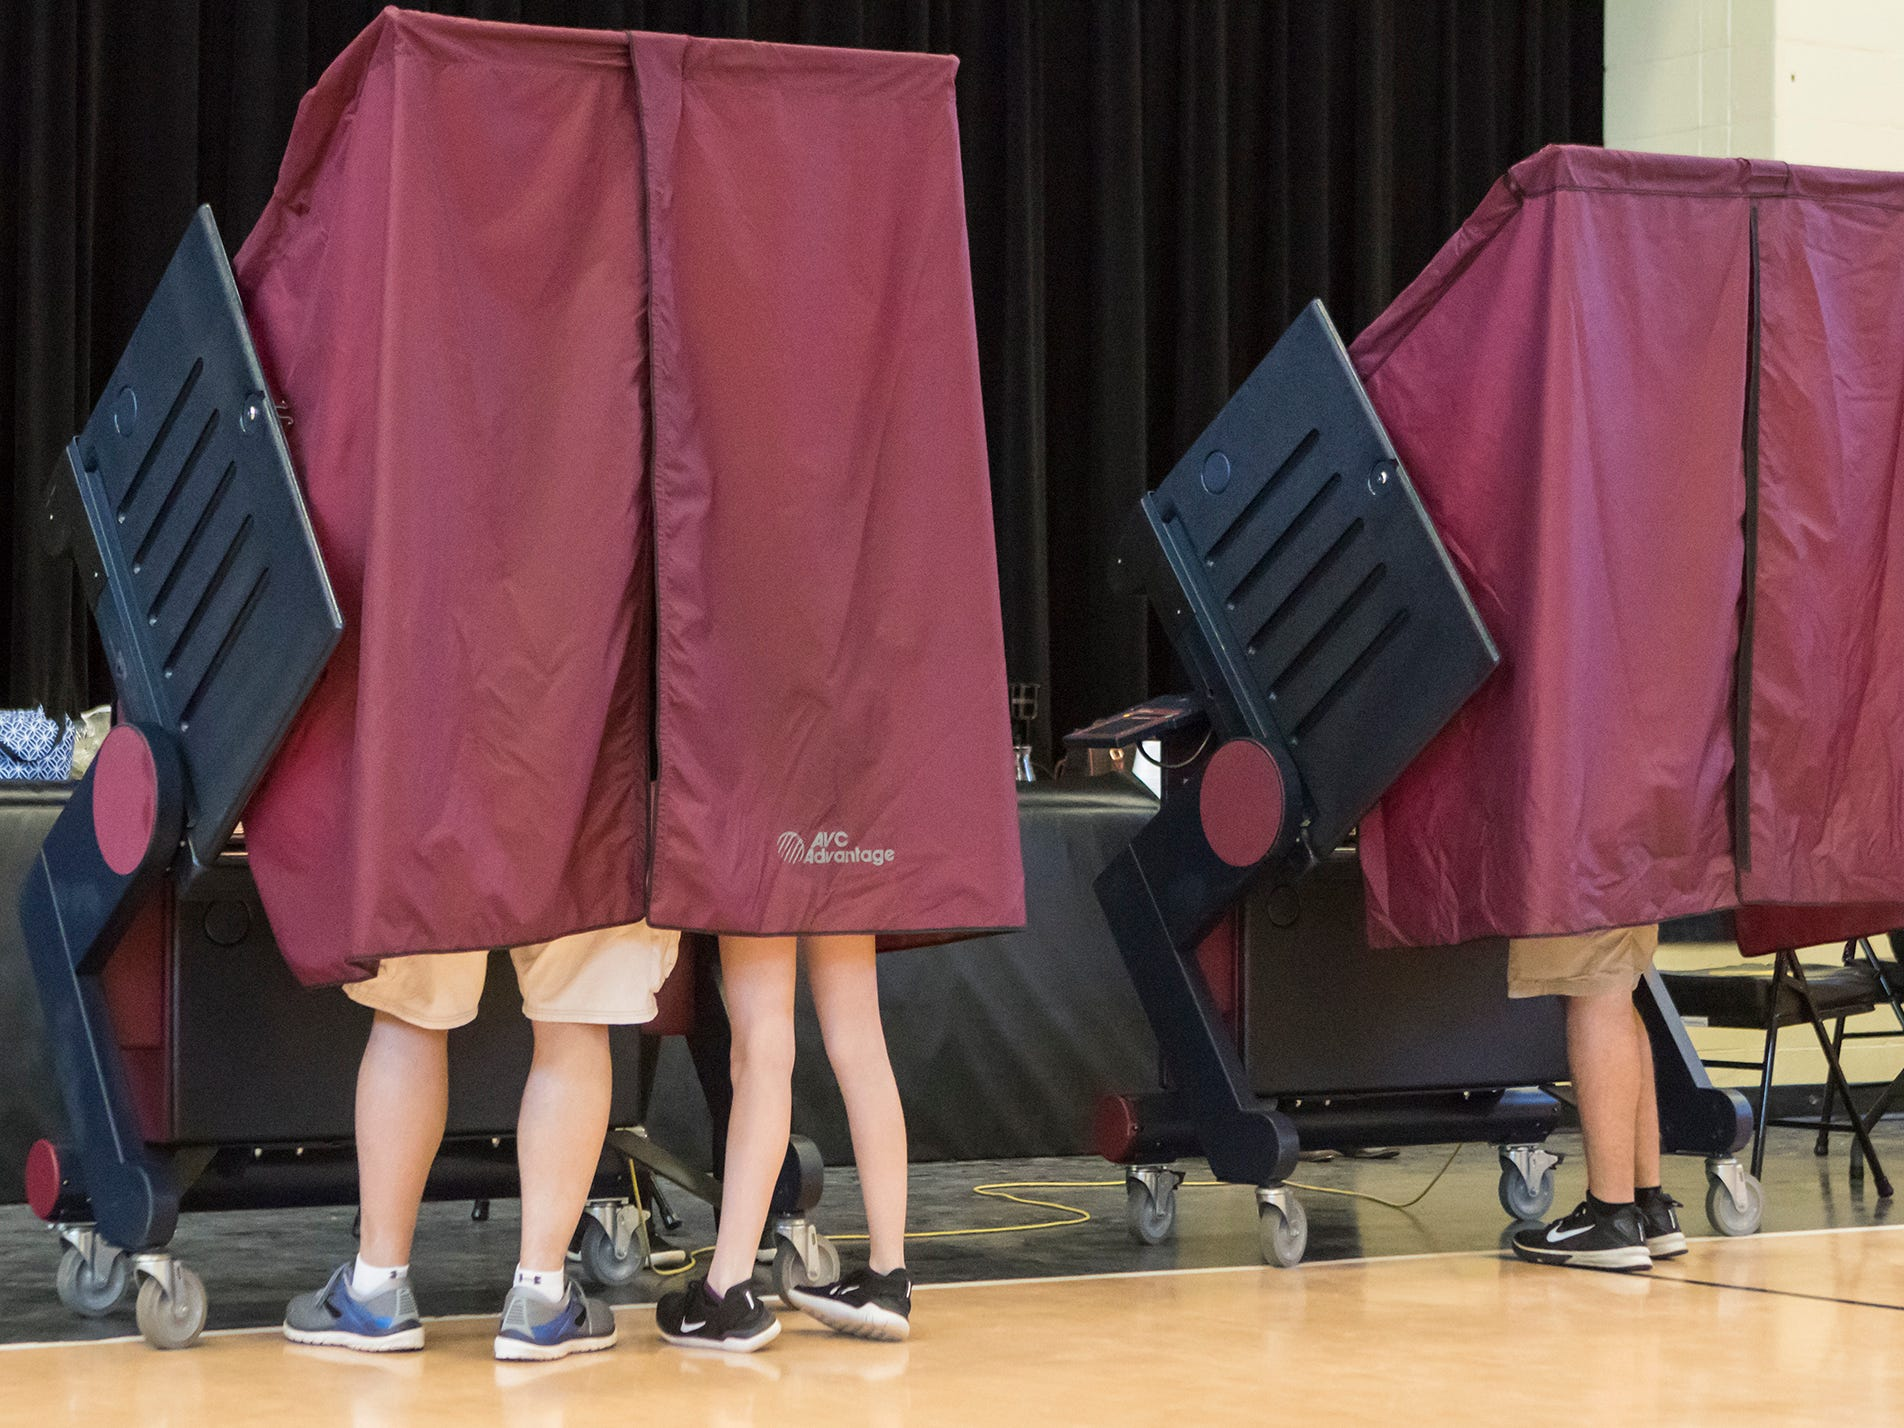 People from Monroe, La. exercised their right to vote in the 2018 Midterm Electionon Nov. 6.